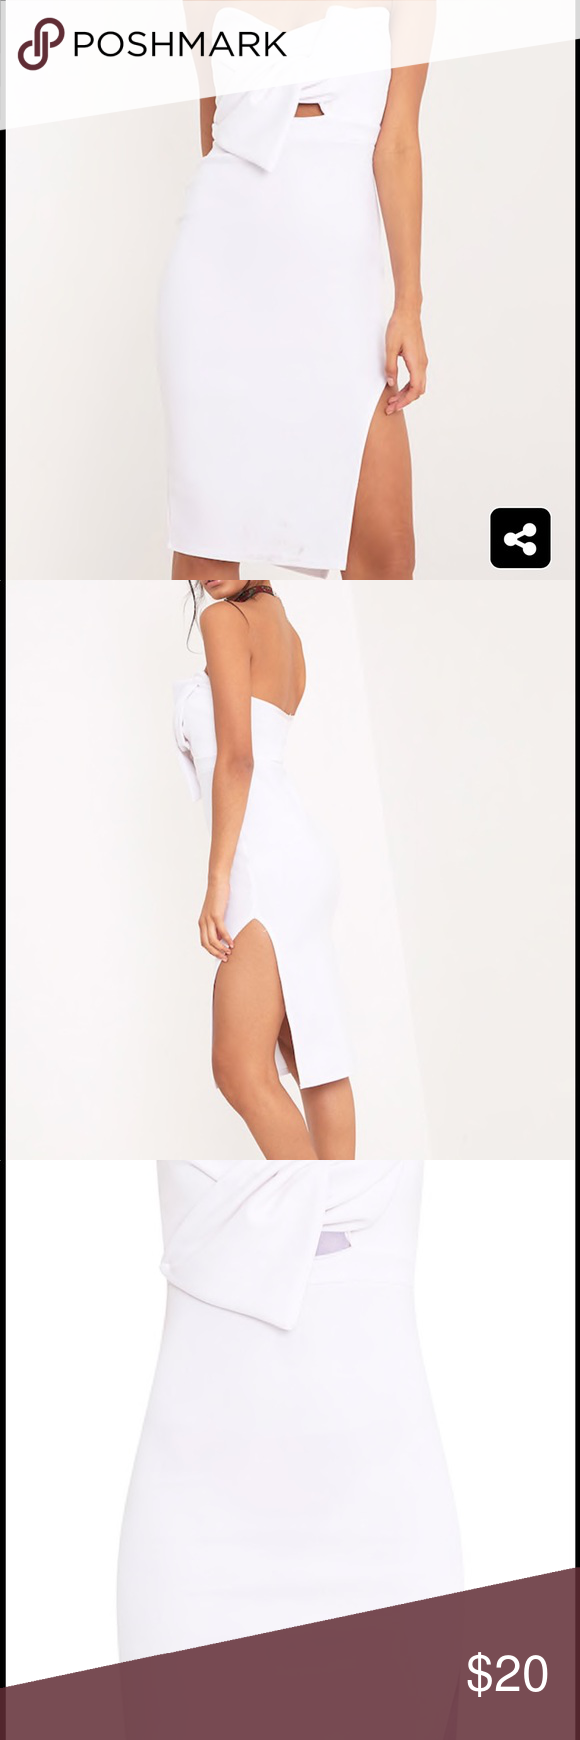 White bow midi dress Cute white bow dress. Brand new with tag. Francesca's Collections Dresses Midi